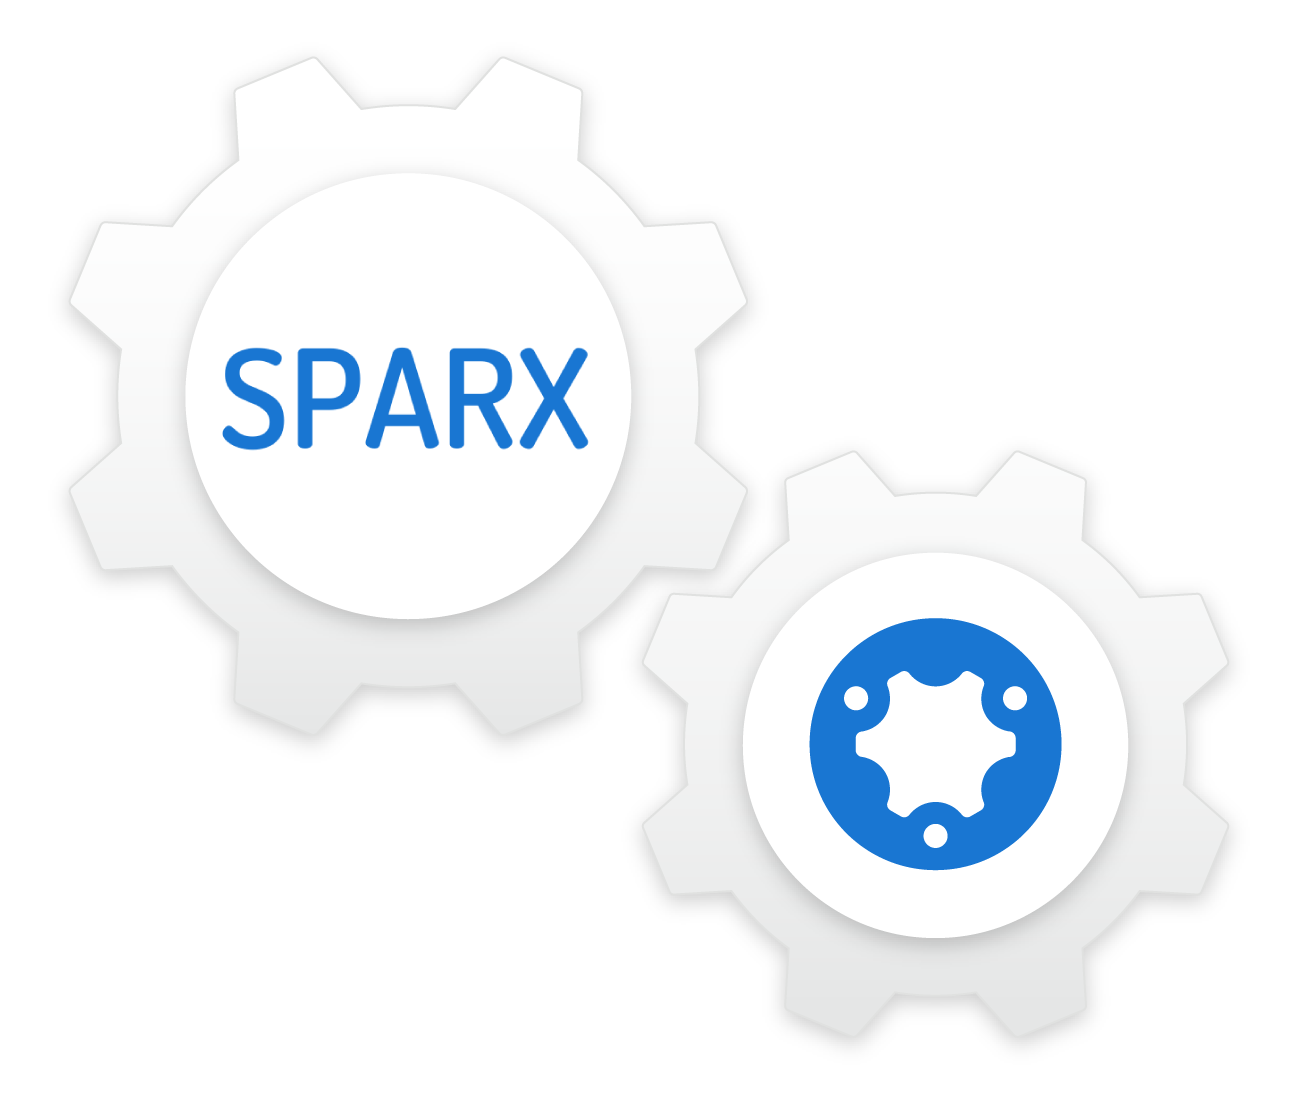 simPRO and SPARX logos integrating as gears